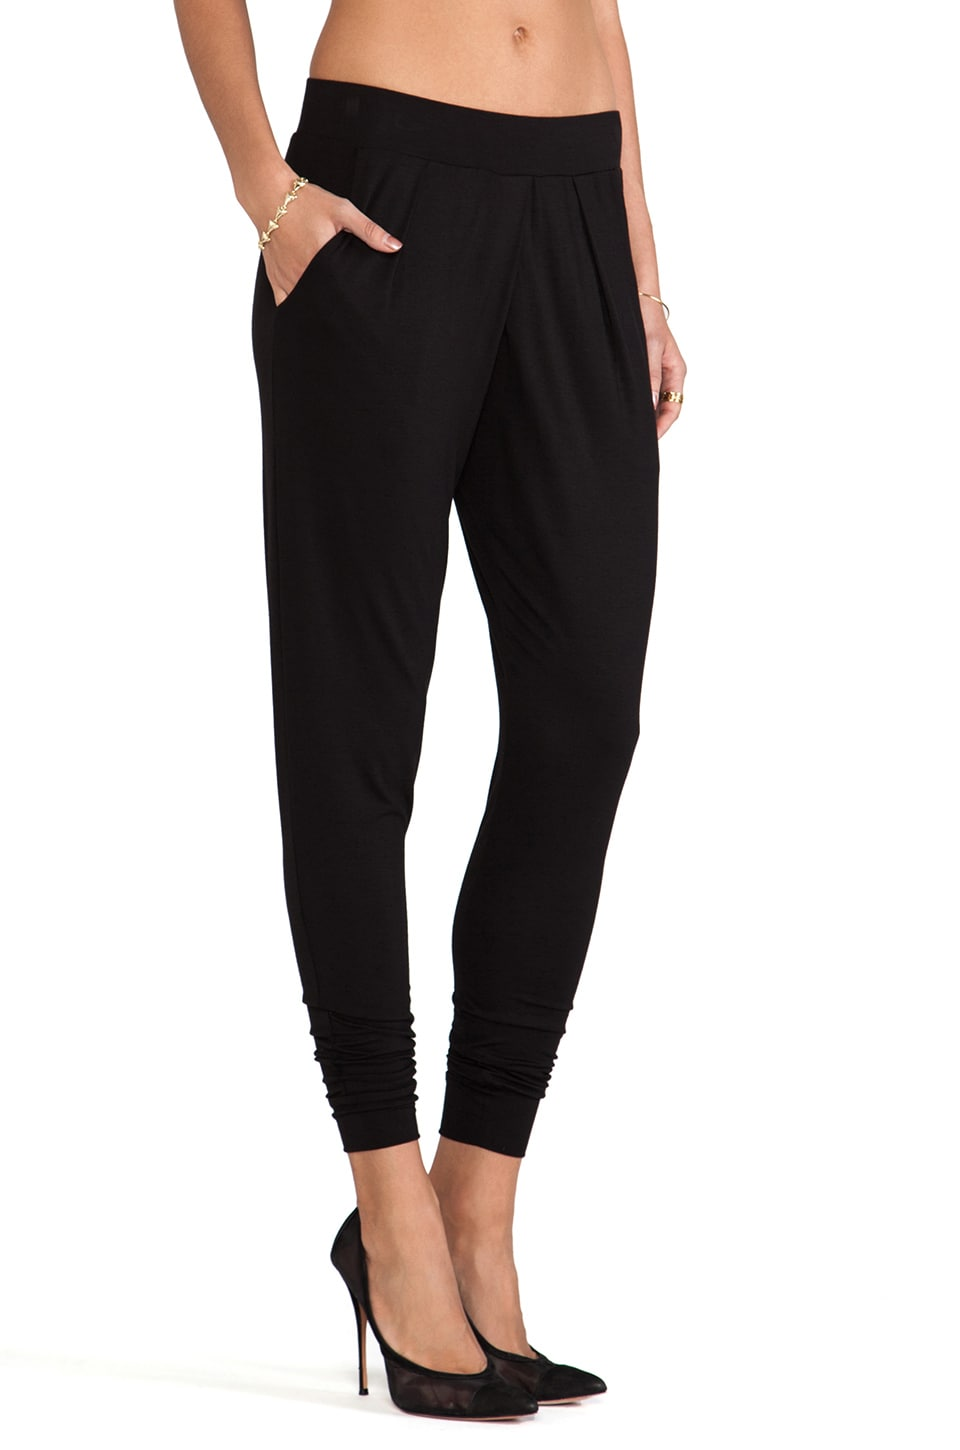 Velvet by Graham & Spencer Slinky Rayon Landa Pants in Black